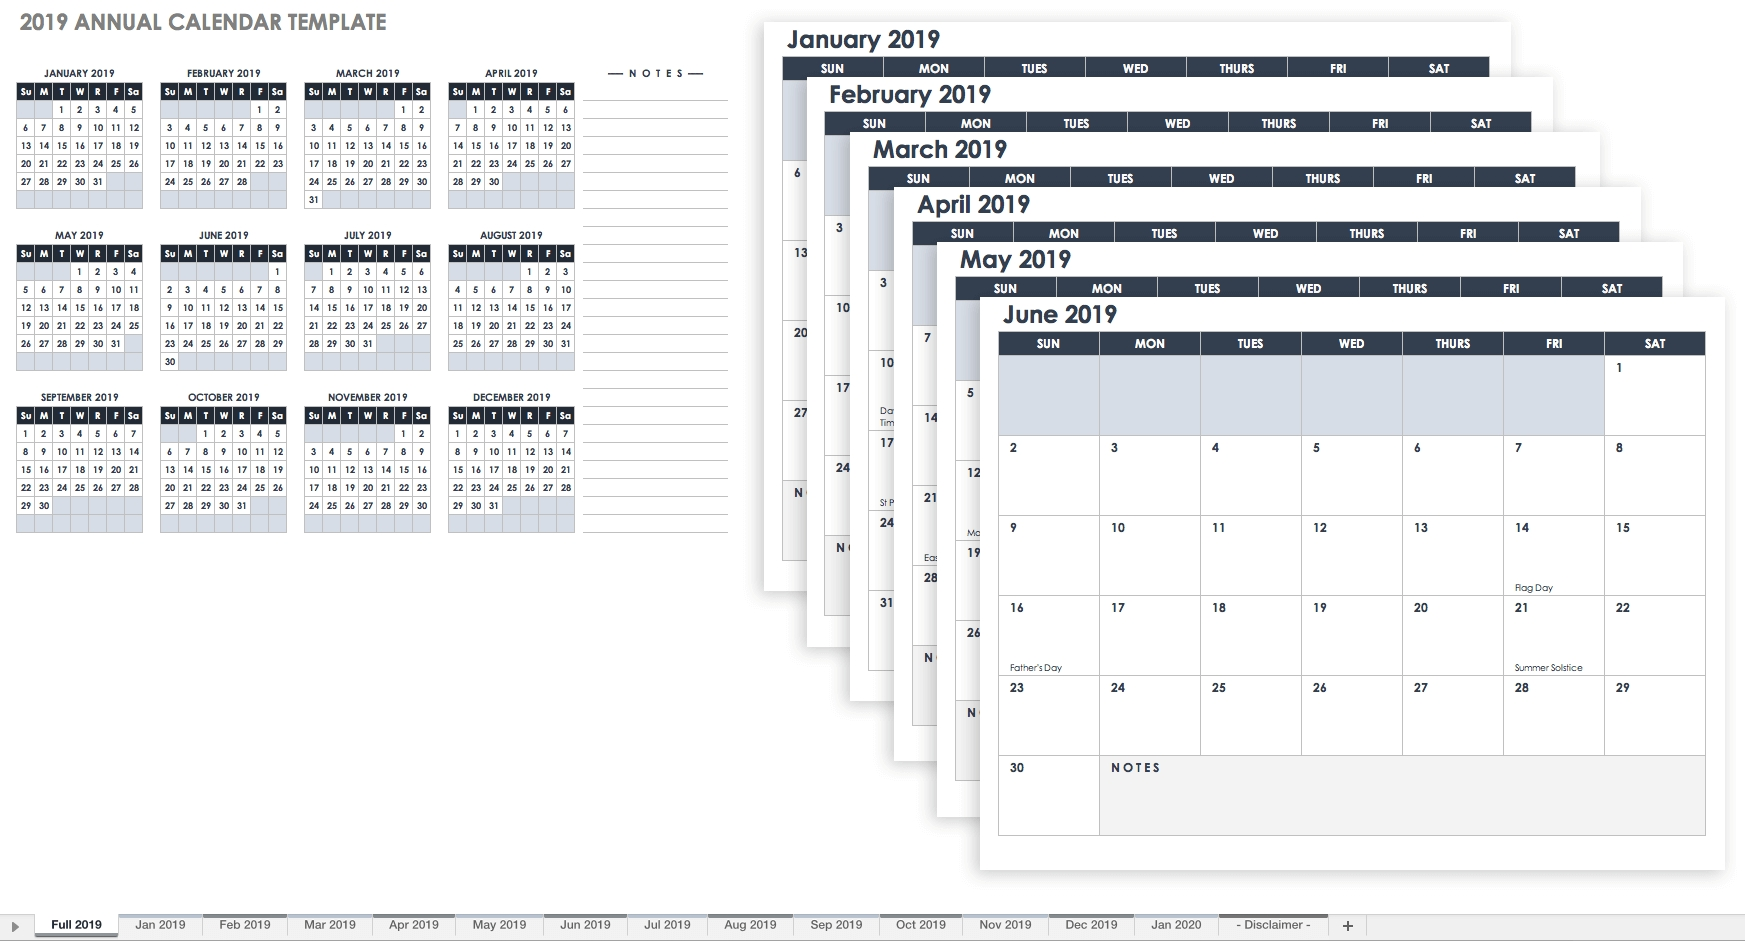 15 Free Monthly Calendar Templates | Smartsheet 2020 Calendar With Numbered Days